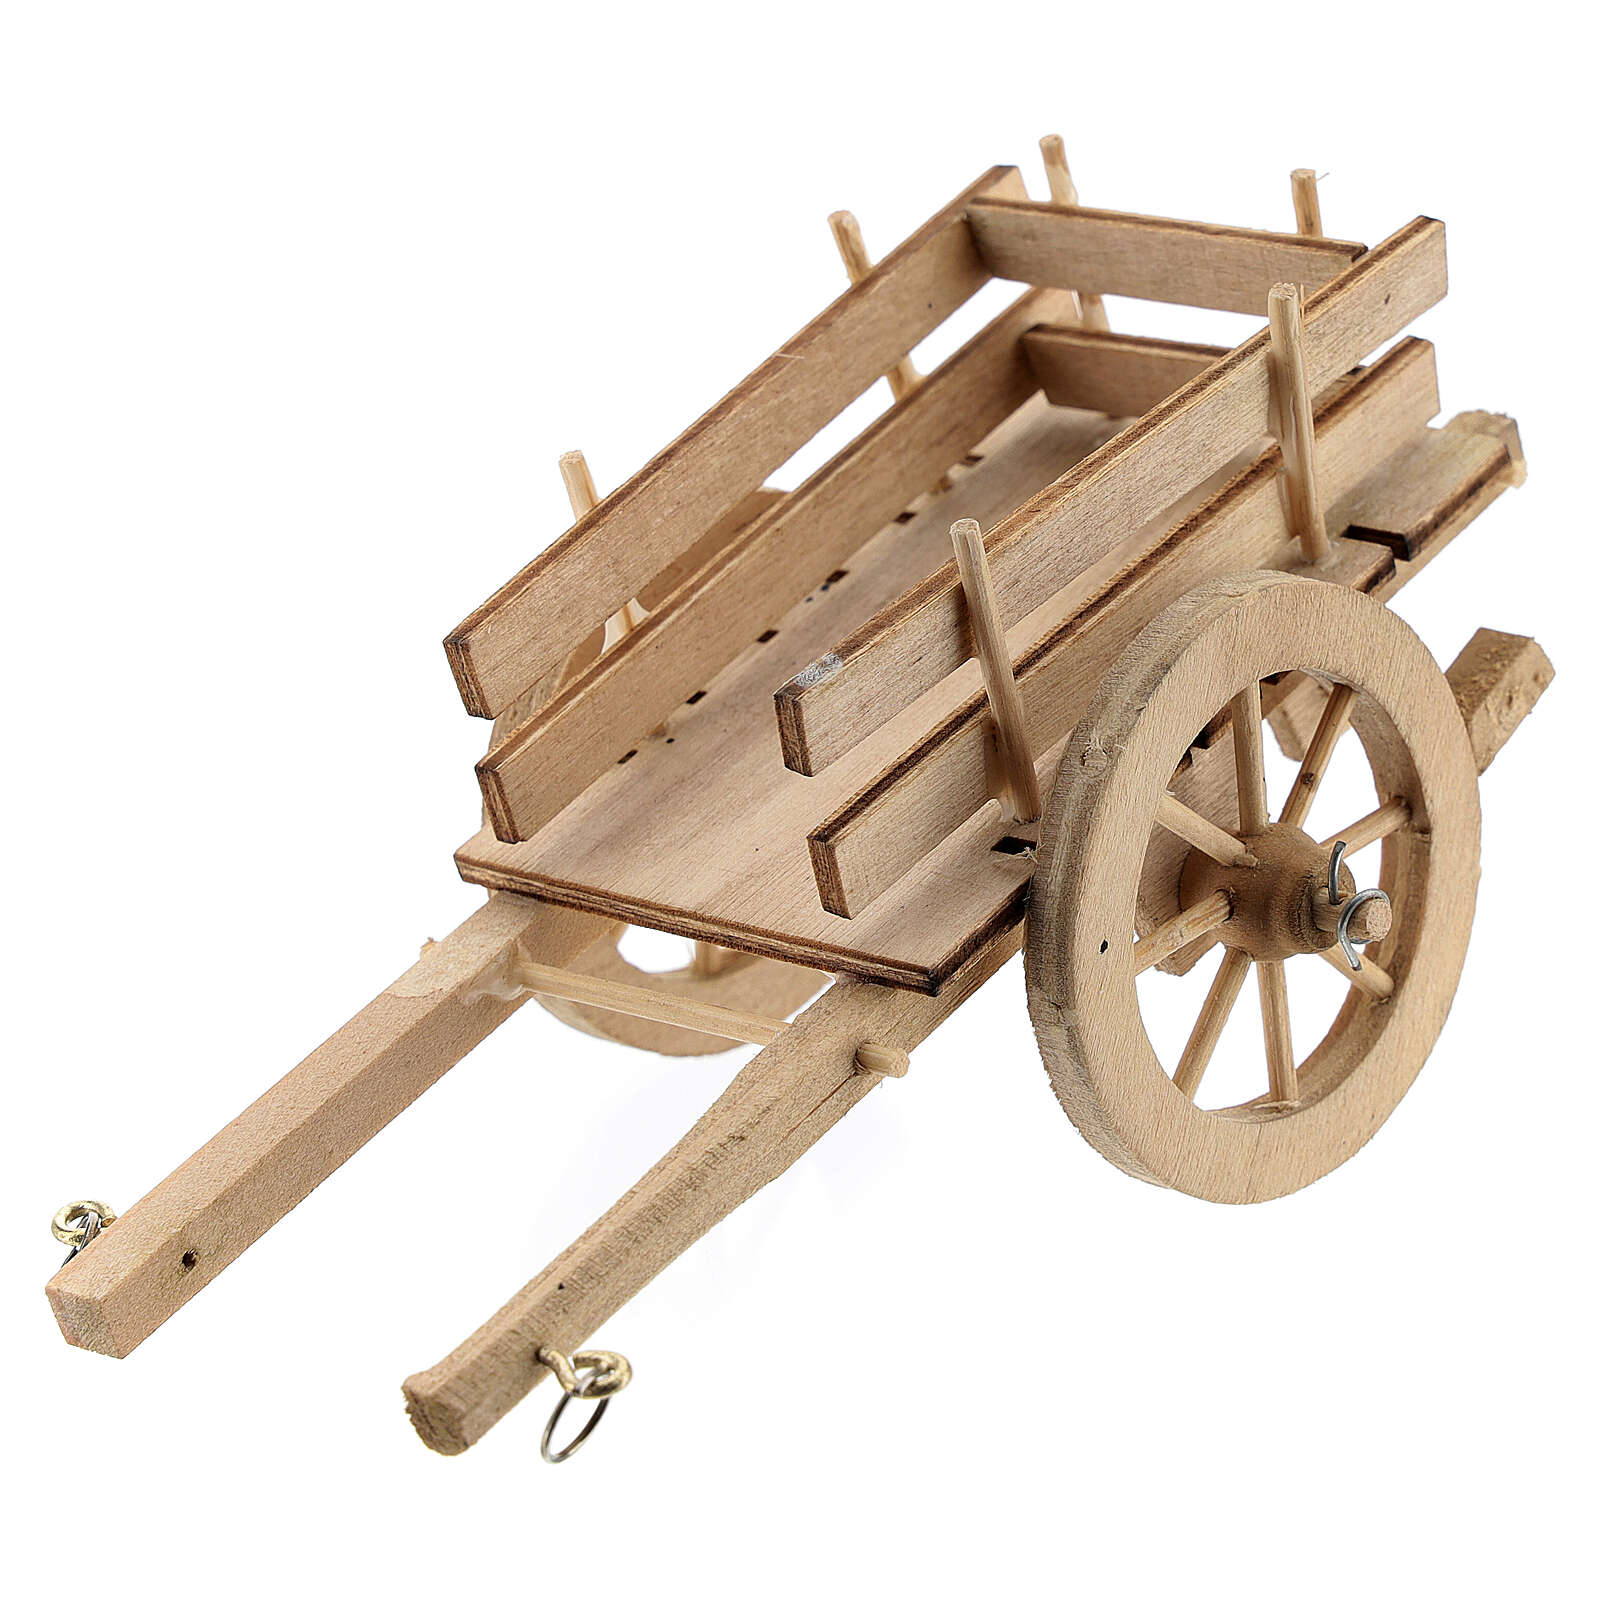 Cart pale wood for Nativity Scene with 8-10 cm figurines 4